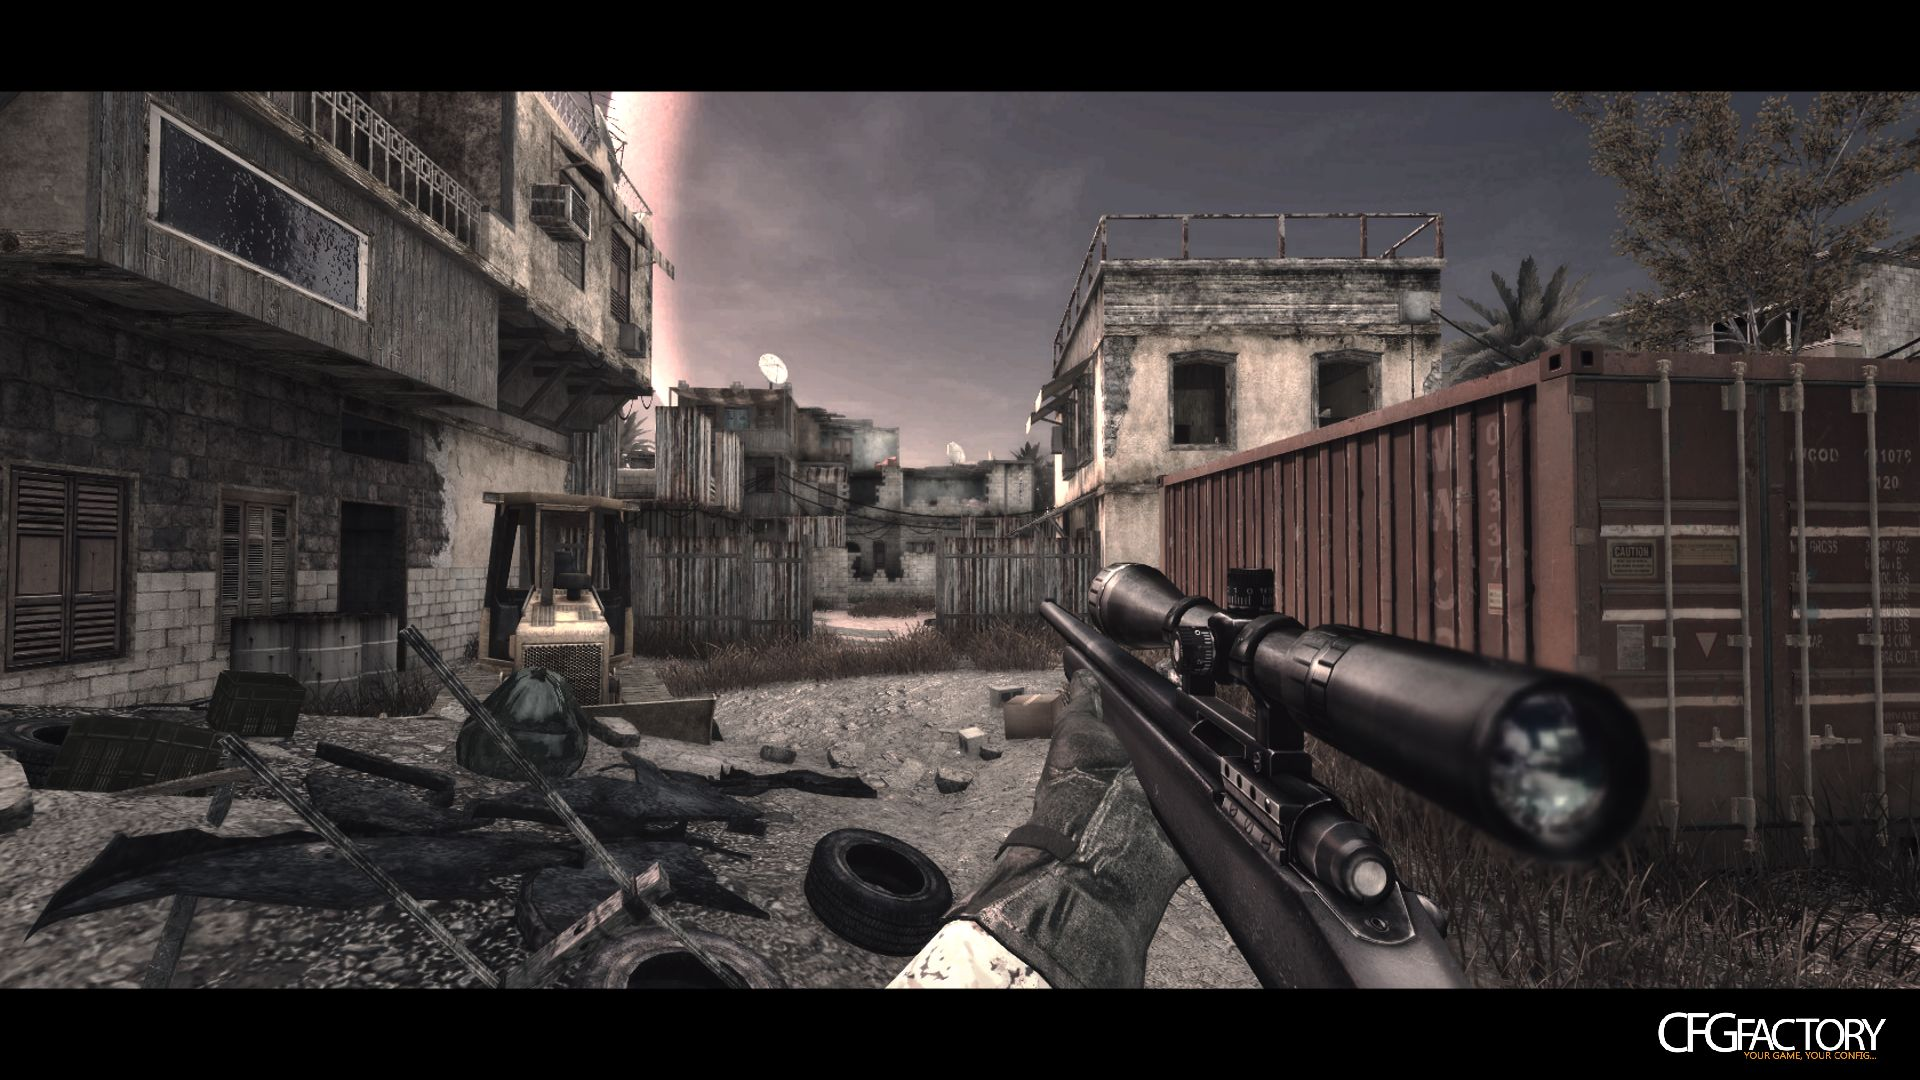 cod4, movie configs, insomnia cc (remake), flm/azercii